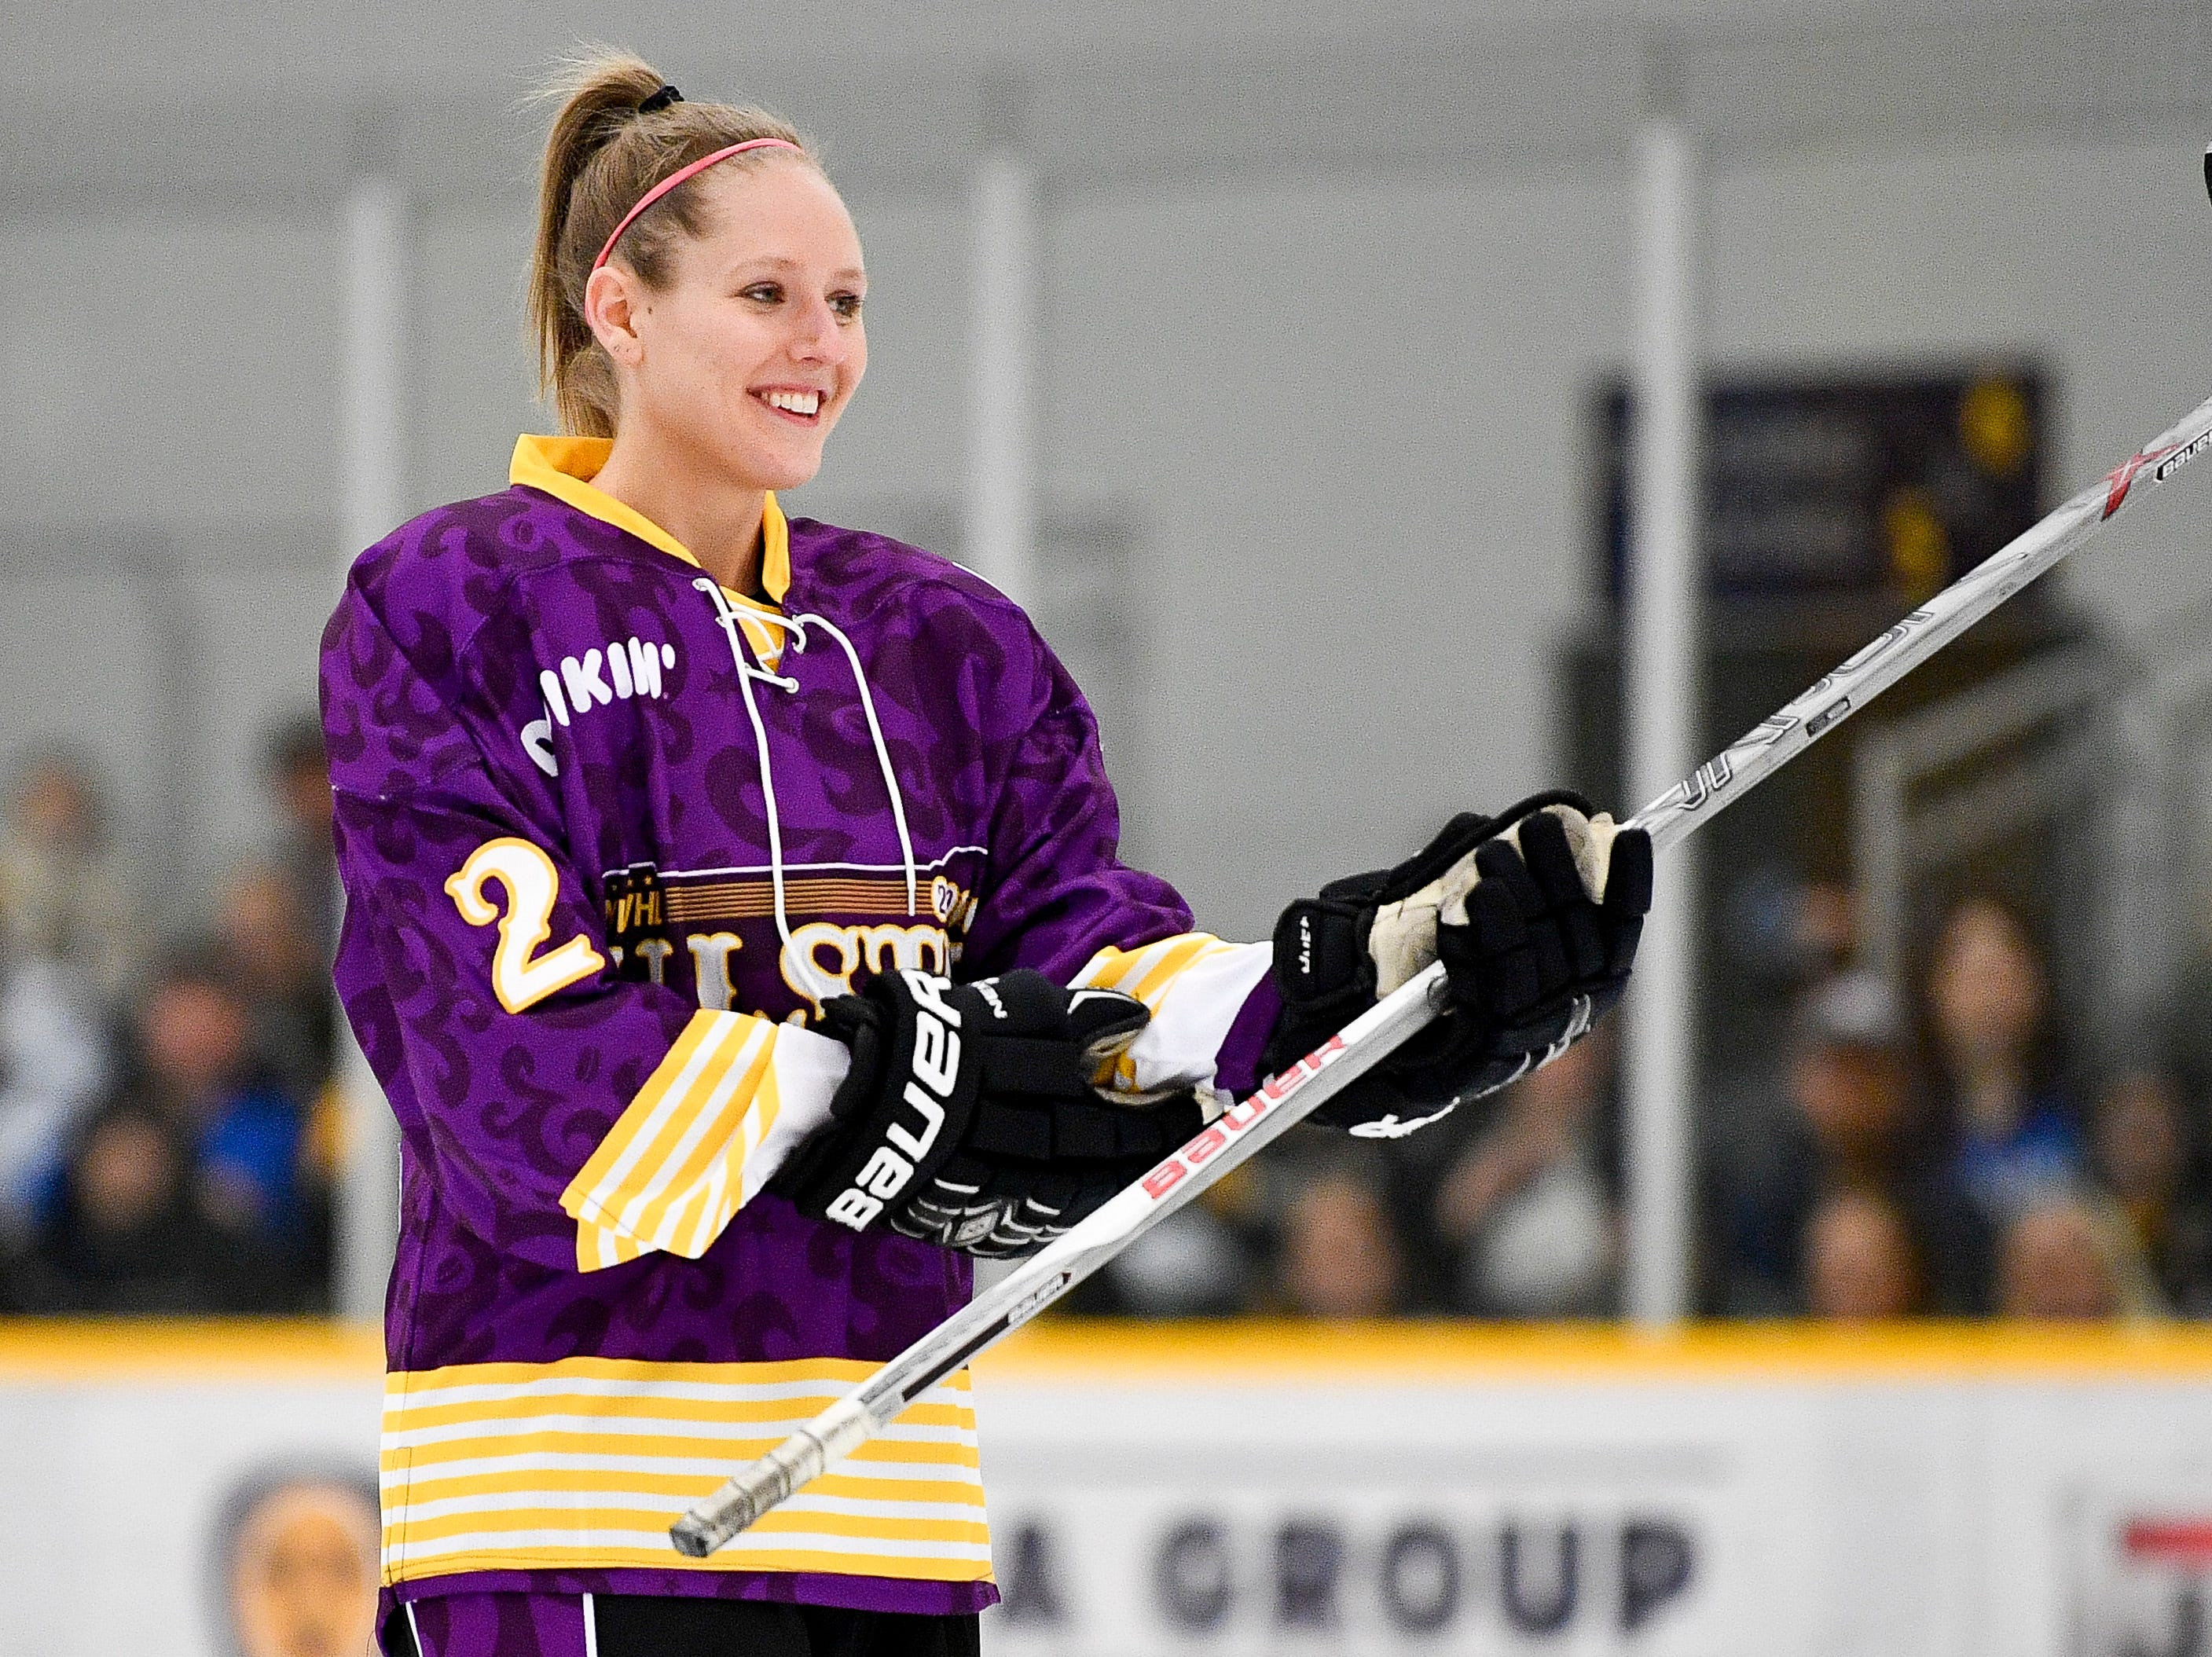 Alyssa Gagliardi competes in hardest shot competition during the 2019 NWHL All-Star Weekend Skills Competition at Ford Ice Center in Antioch, Tenn., Saturday, Feb. 9, 2019.